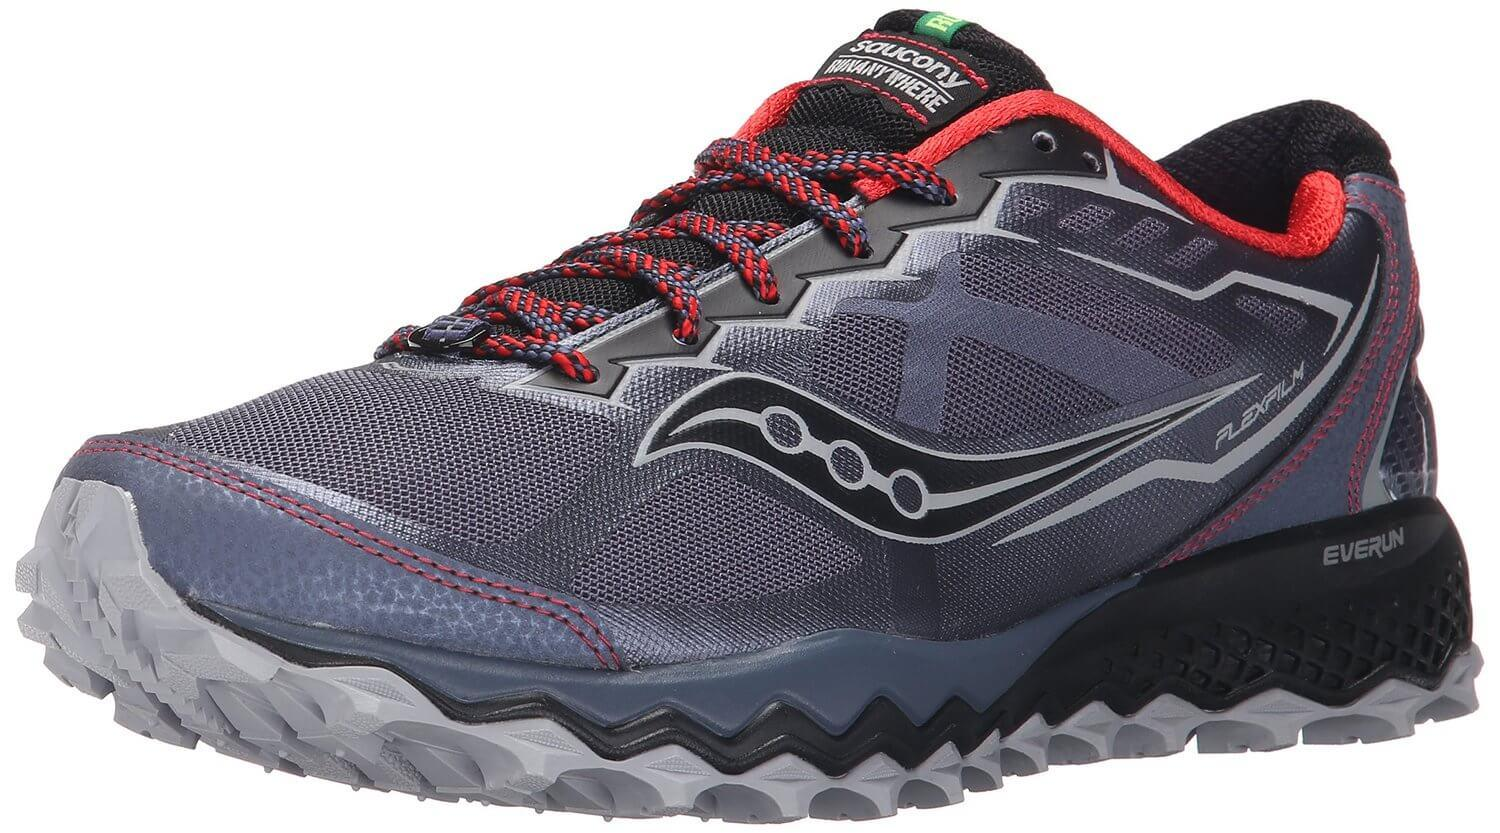 the Saucony Peregrine 6 is a durable trail shoe that offers breathability and great grip